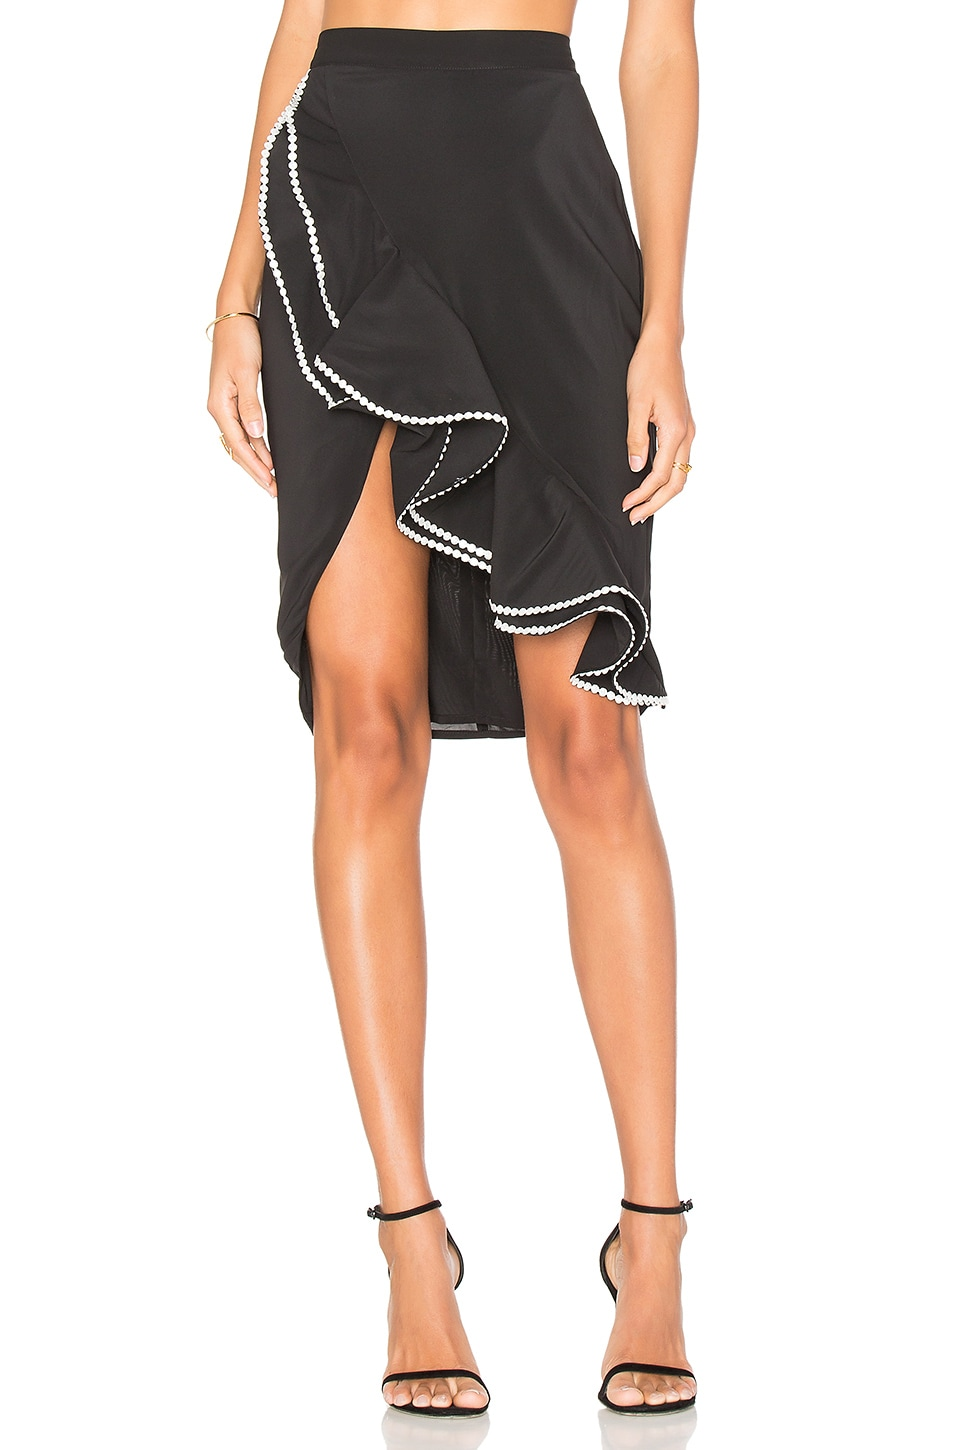 x REVOLVE Zayleigh Skirt by NBD